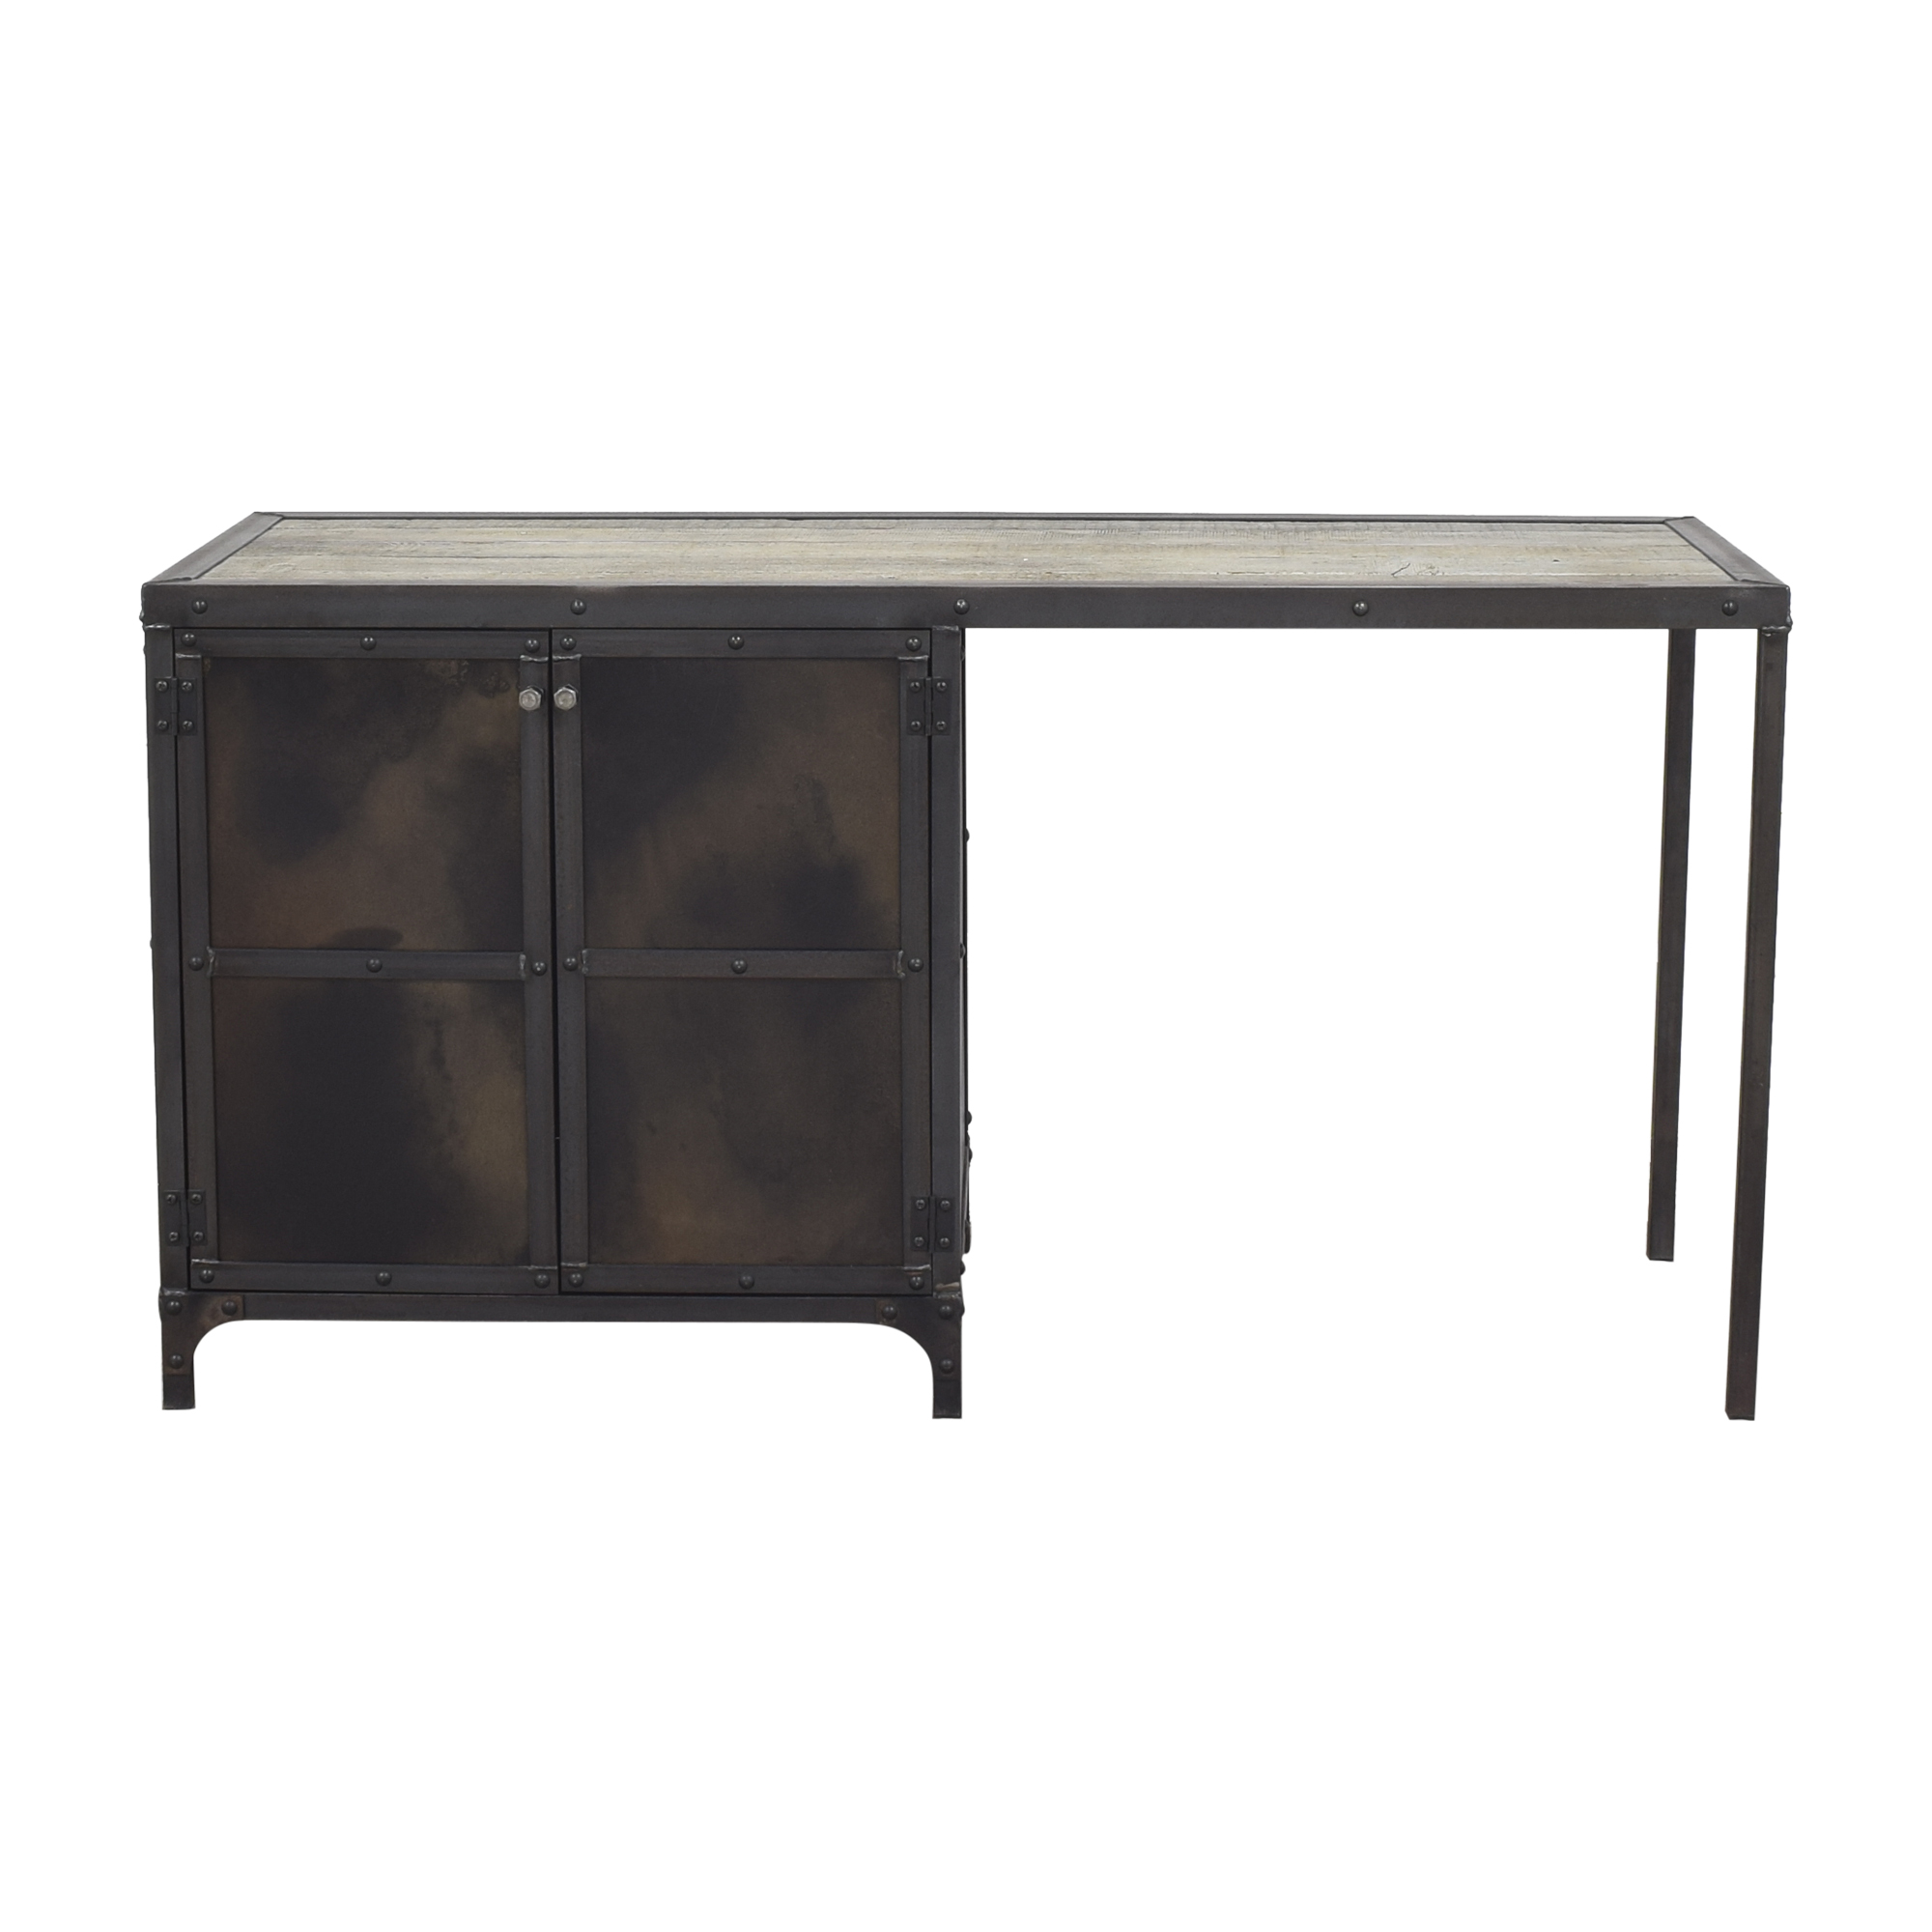 shop Combine 9 Combine 9 Industrial Desk with Side Cabinet Storage online